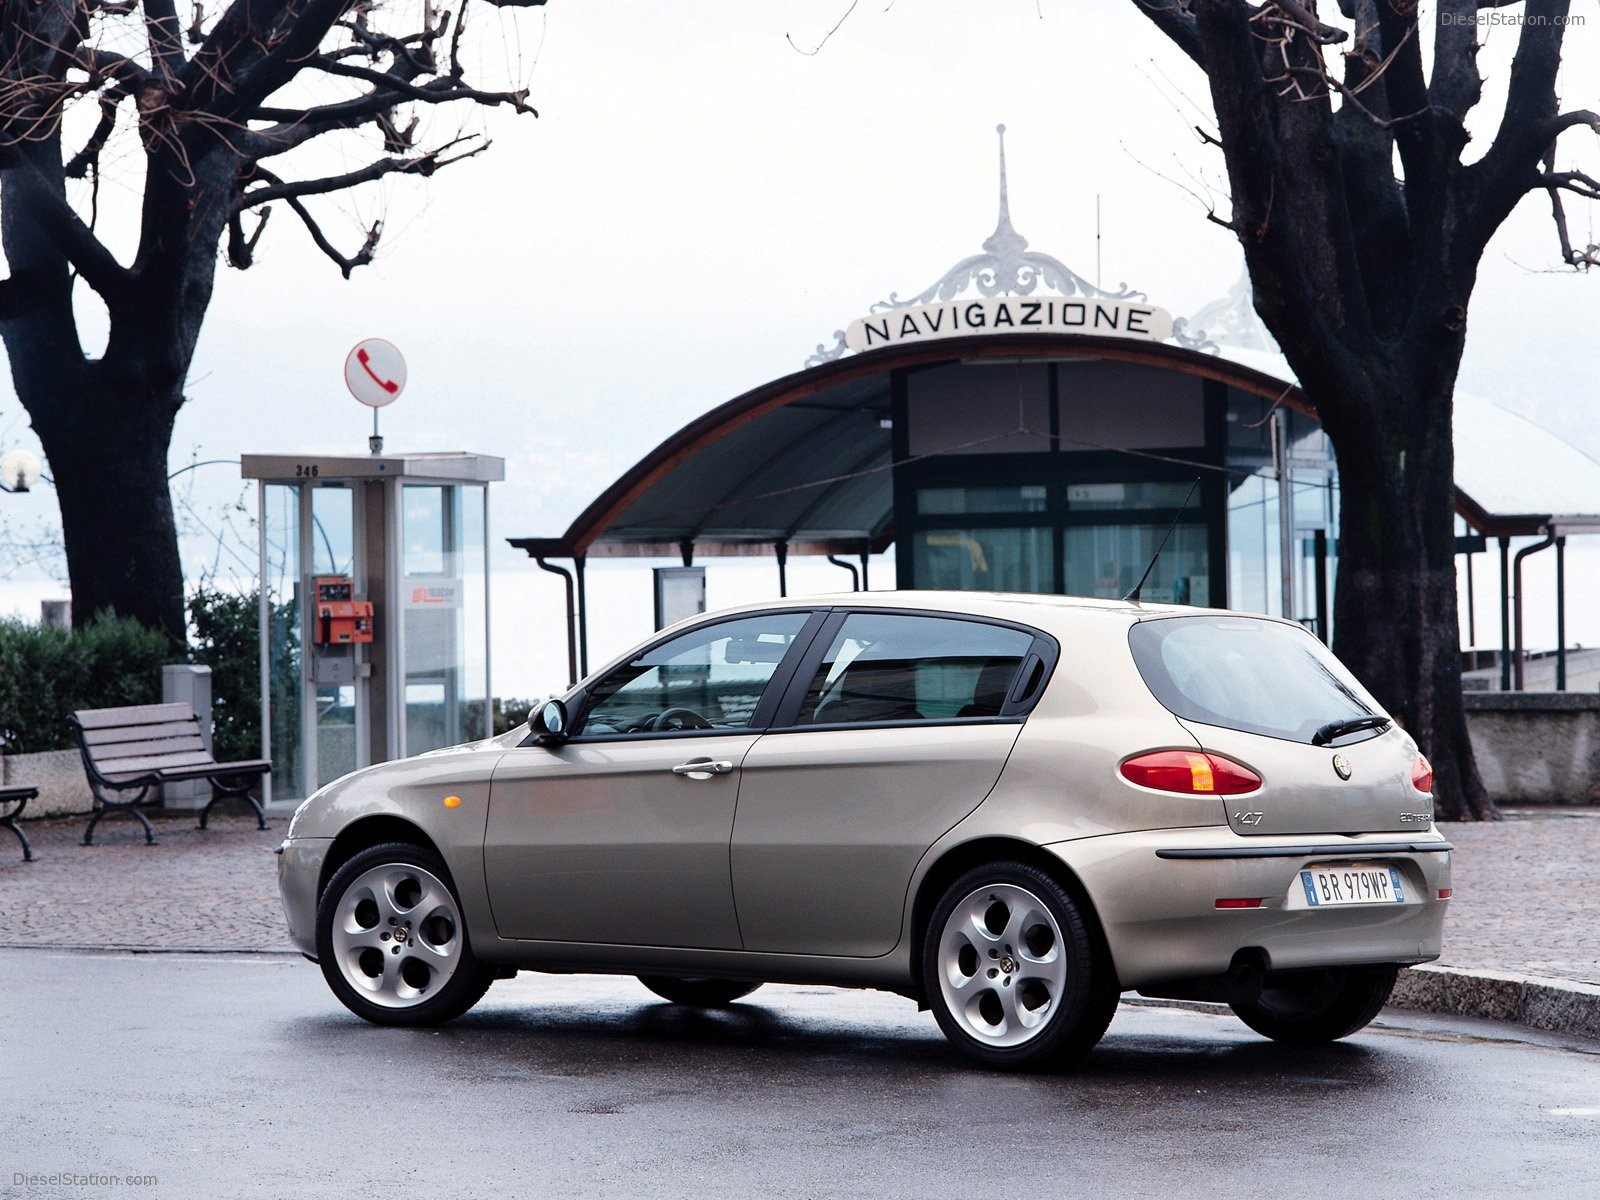 1600x1200 - Alfa Romeo 147 Wallpapers 37